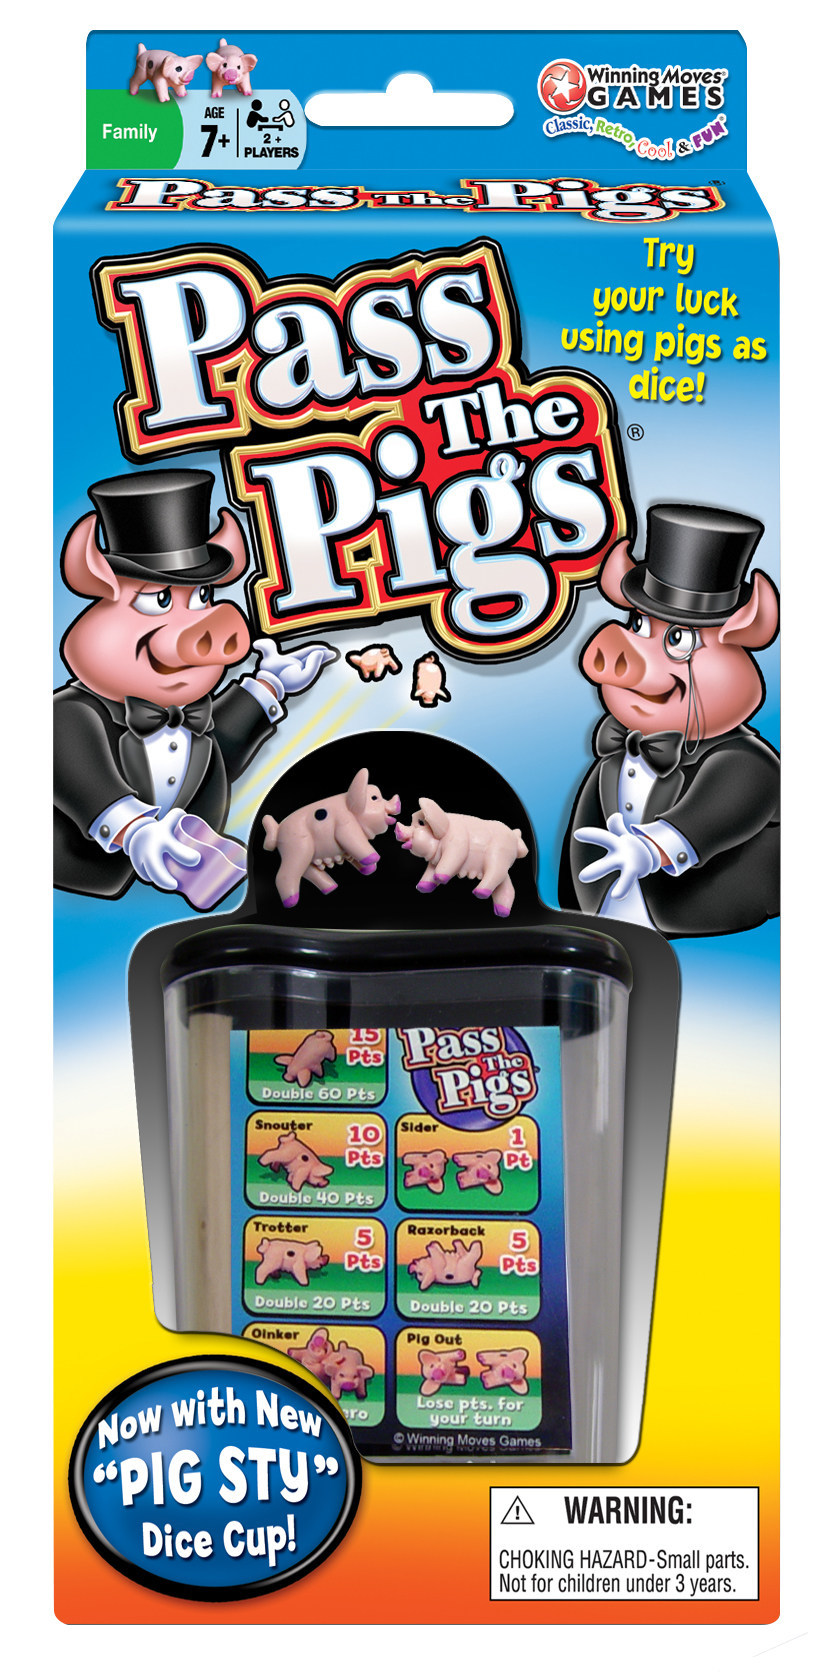 Pass The Pigs(R) Game in Packaging - Winning Moves USA